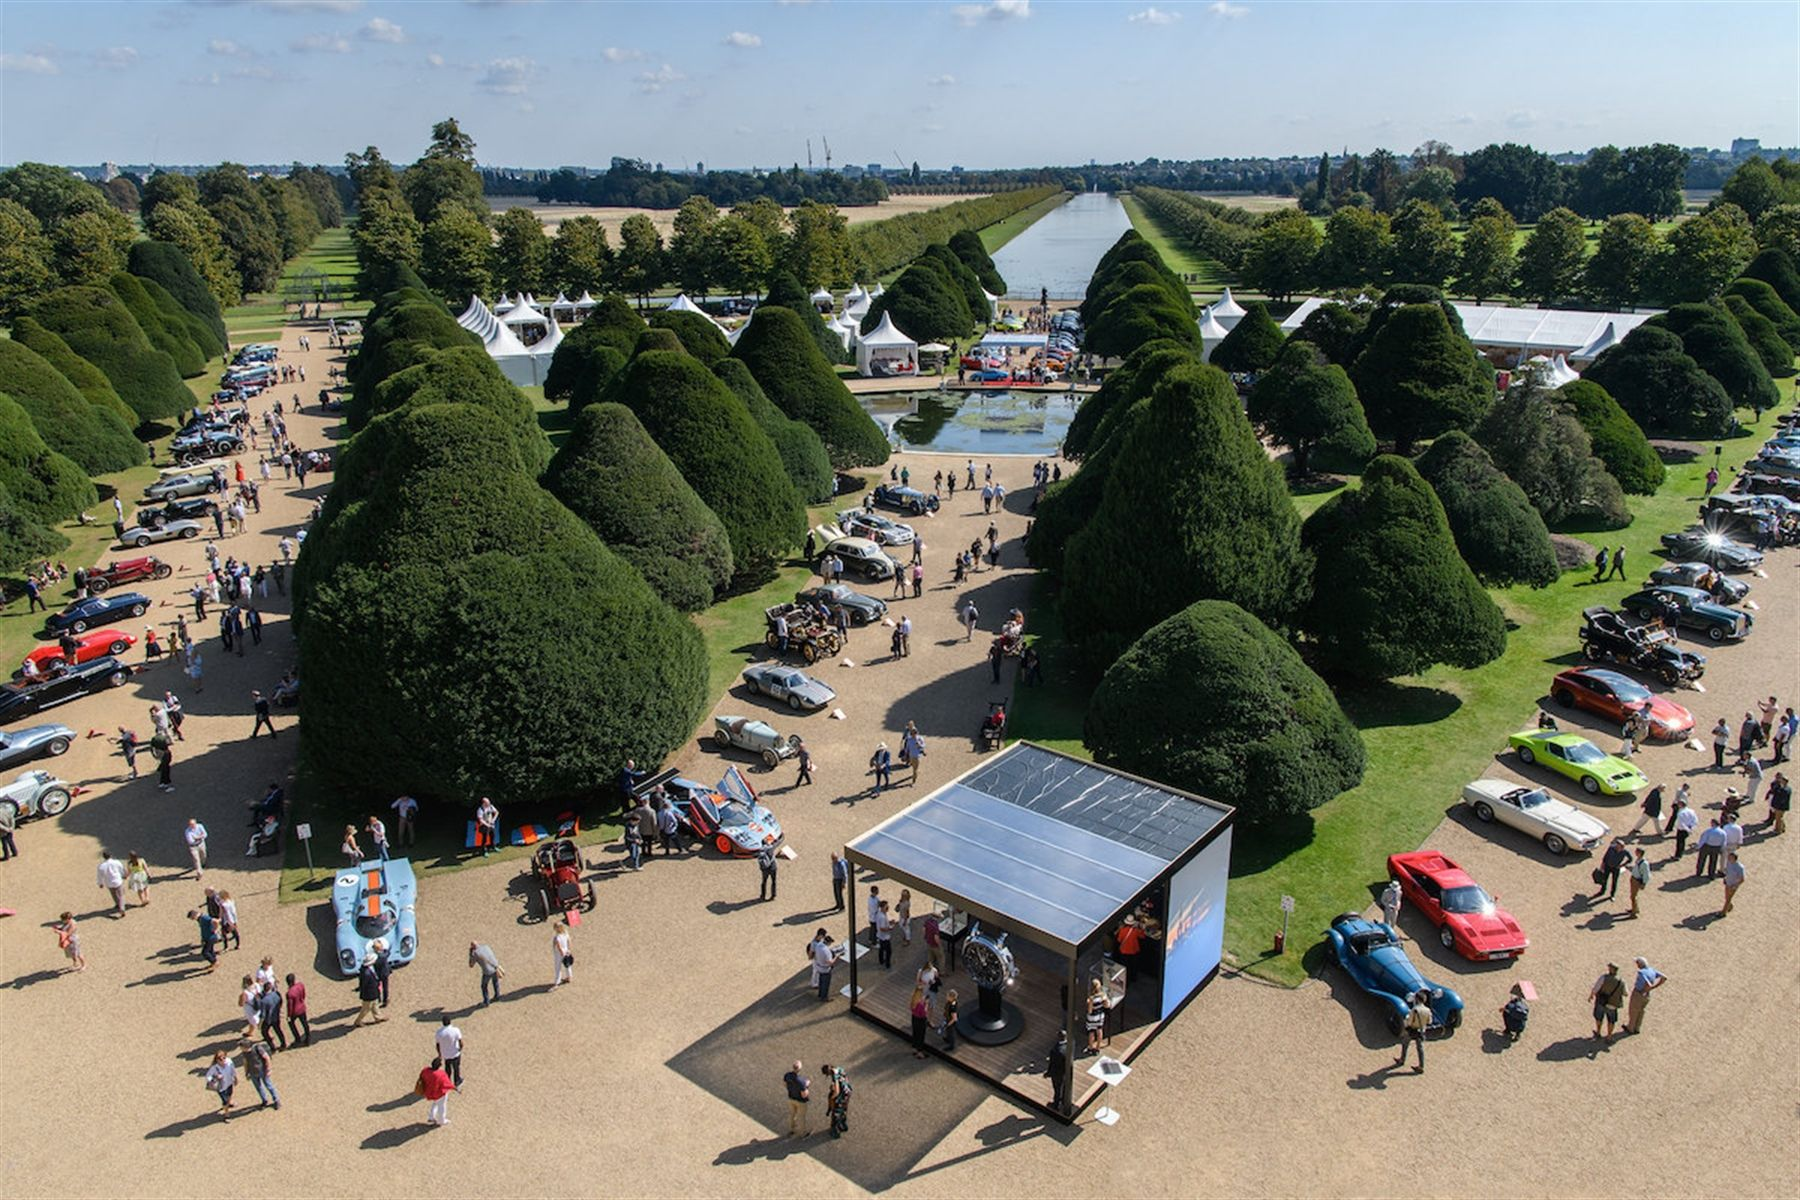 125th Anniversary Celebrations: Concours of Elegance at Hampton Court Palace